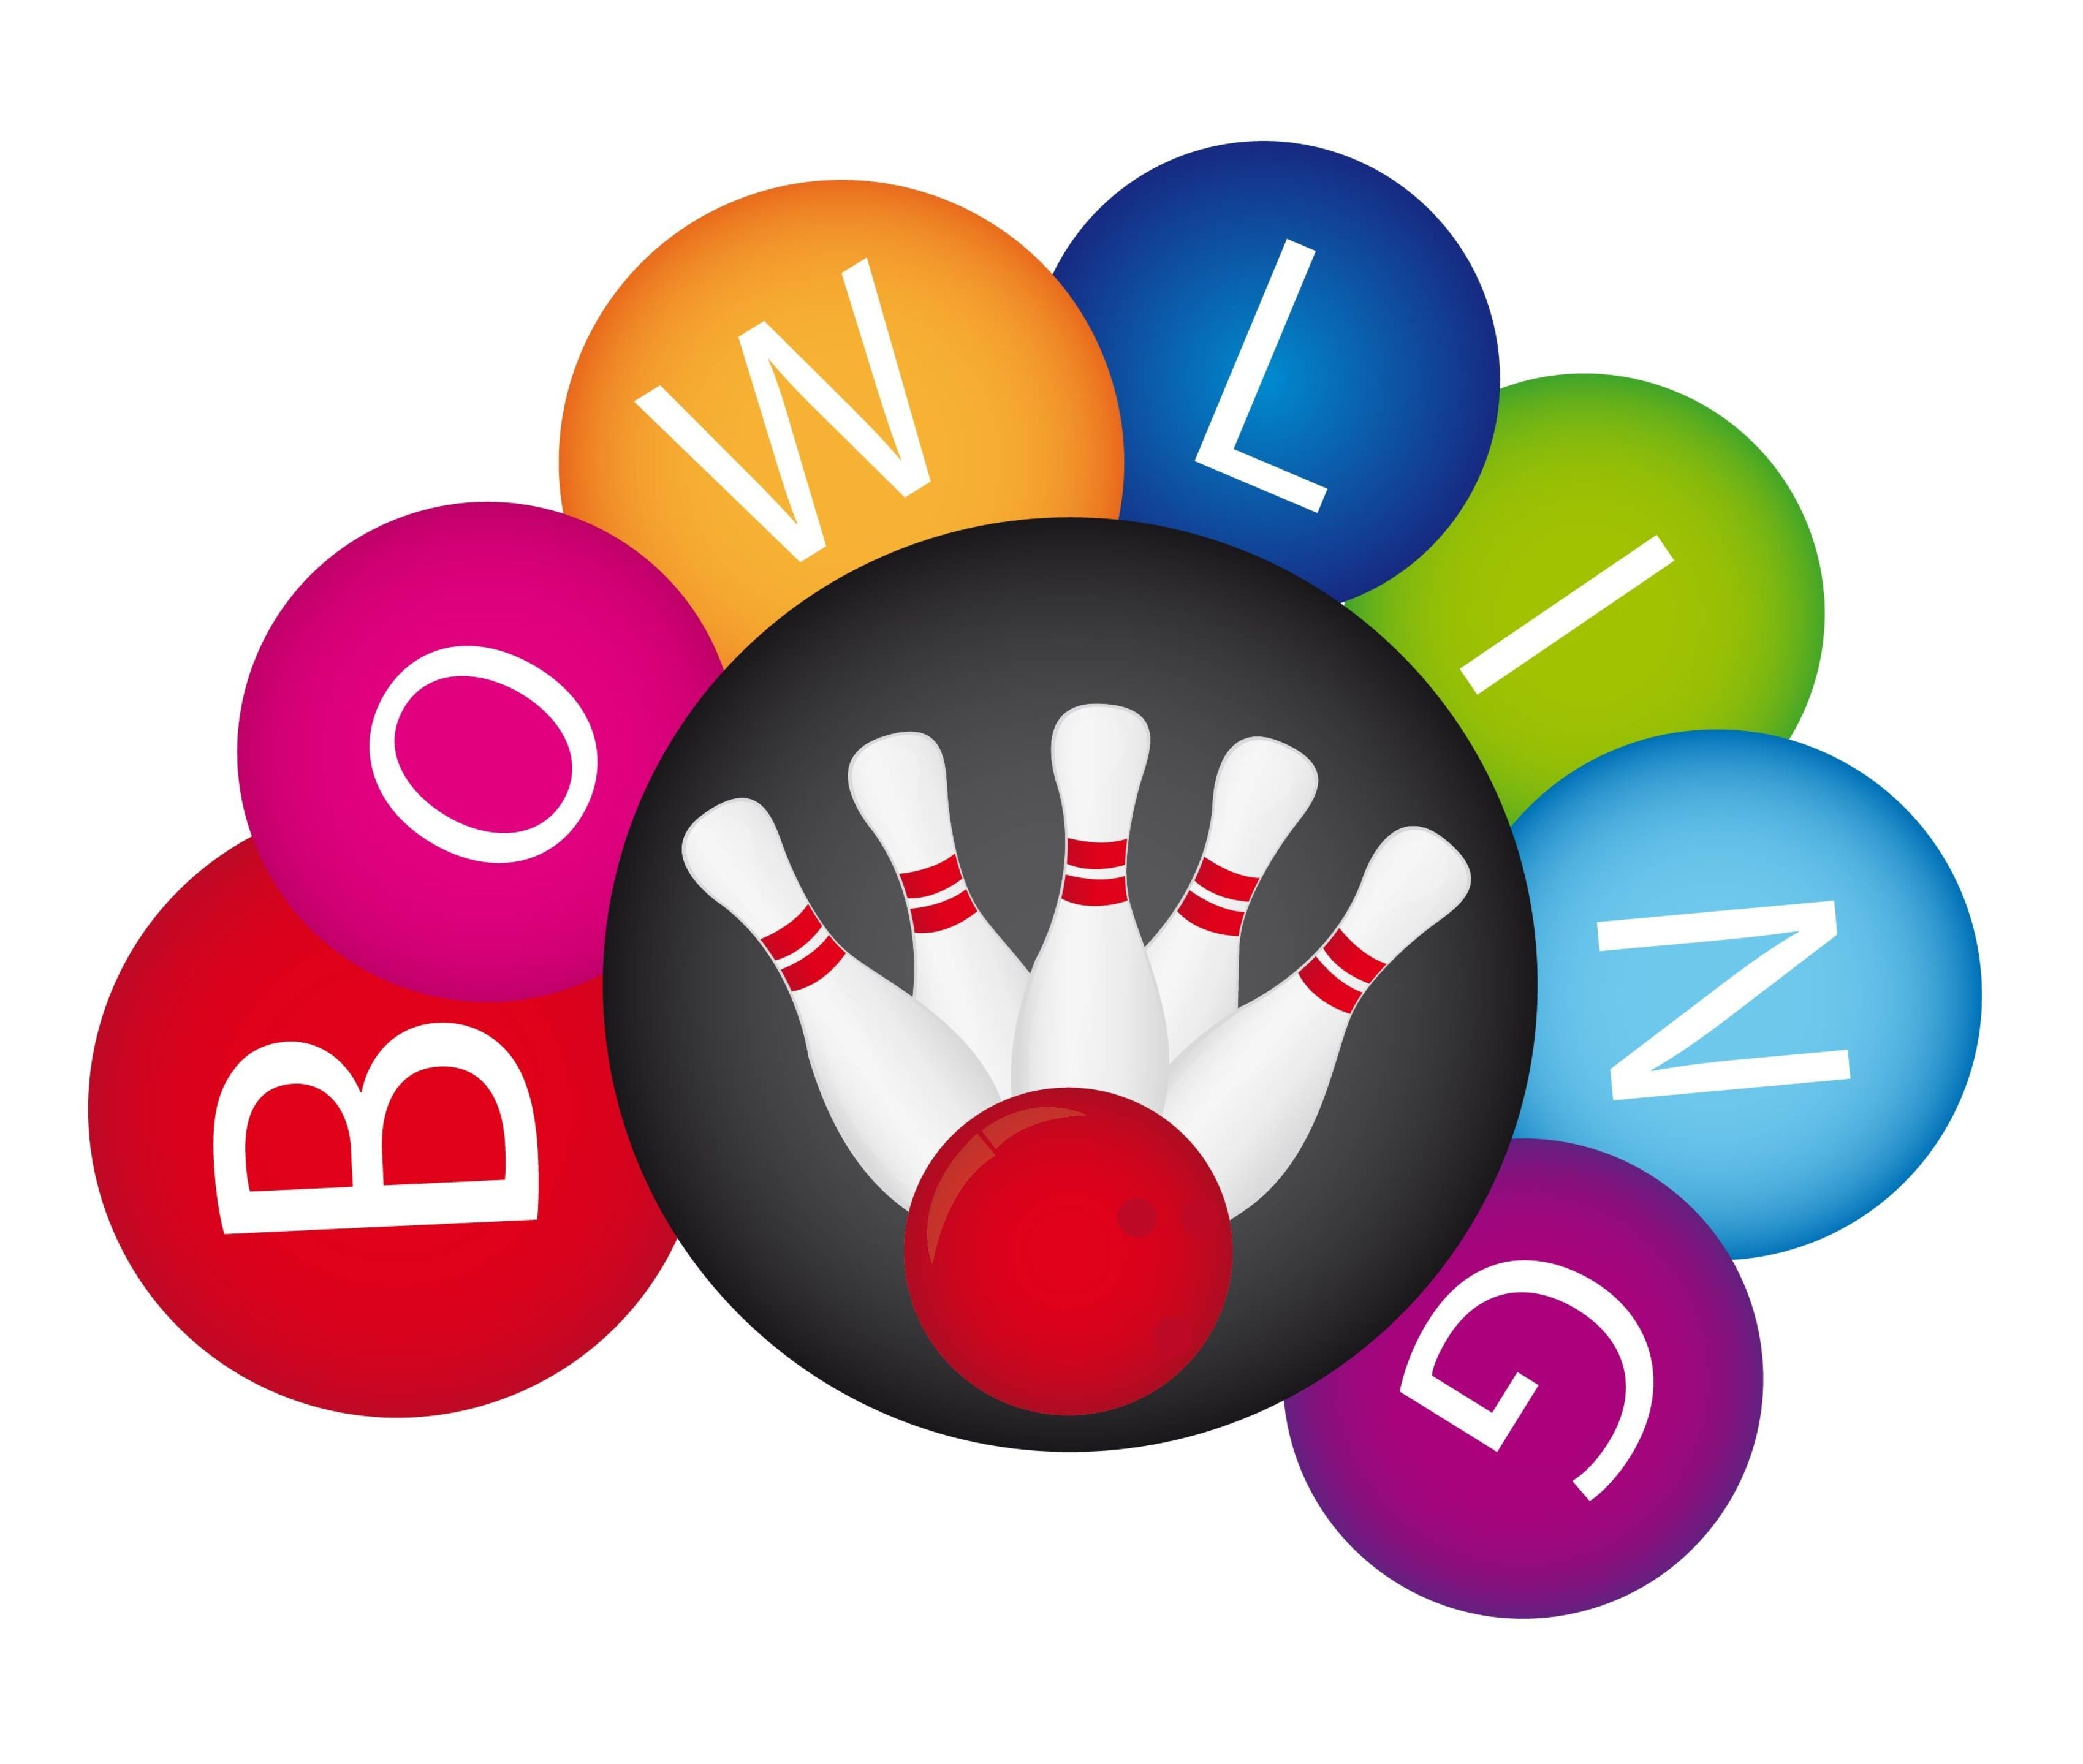 Bowling clipart colorful. Clip art afternoon the